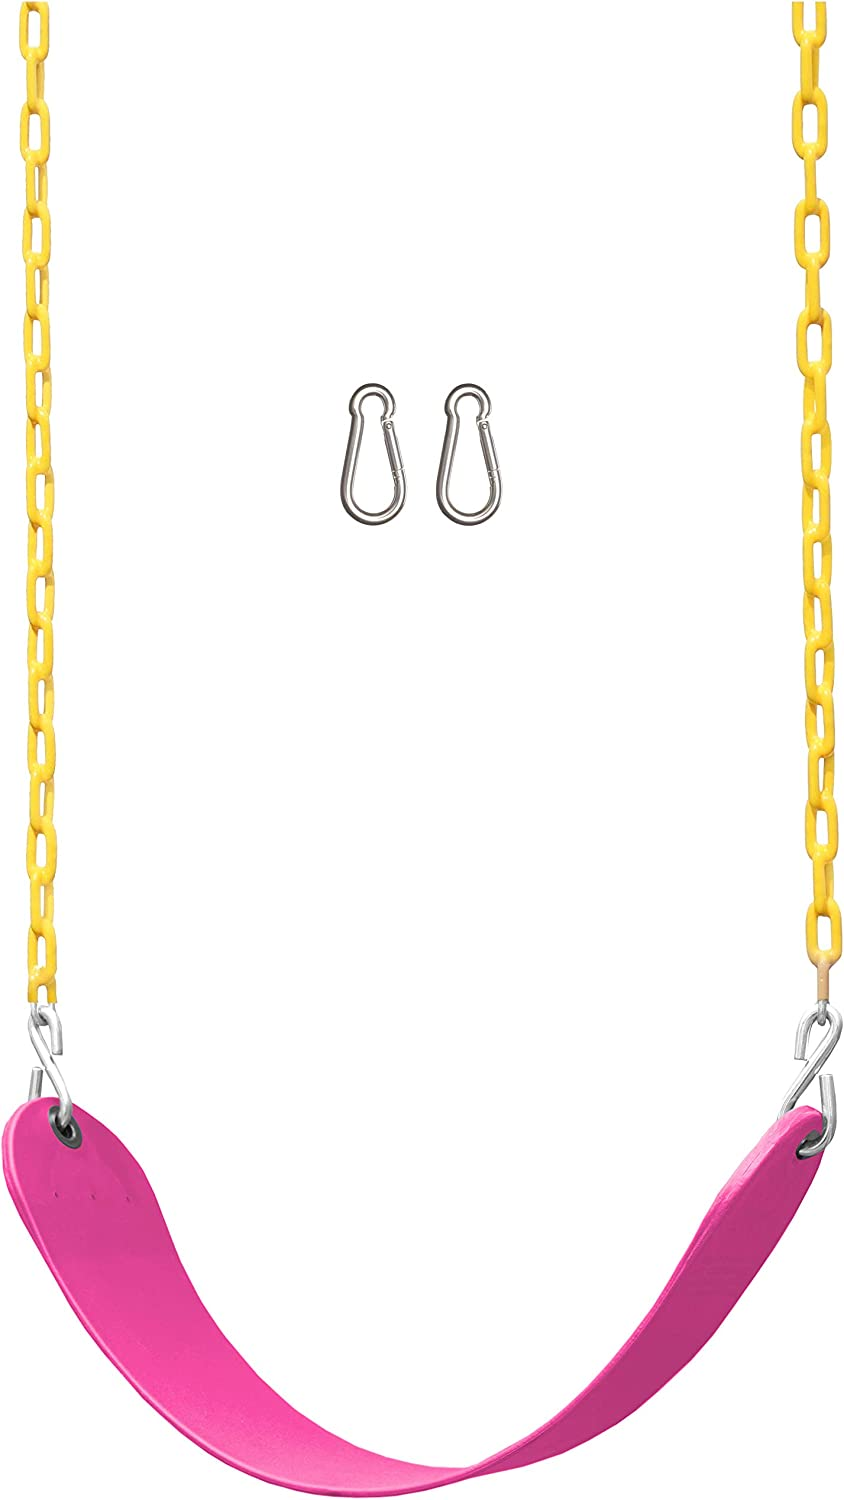 Pink Playground Swing Set Accessories Replacement with Snap Hooks Jungle Gym Kingdom Swing Seat Heavy Duty 66 Chain Plastic Coated